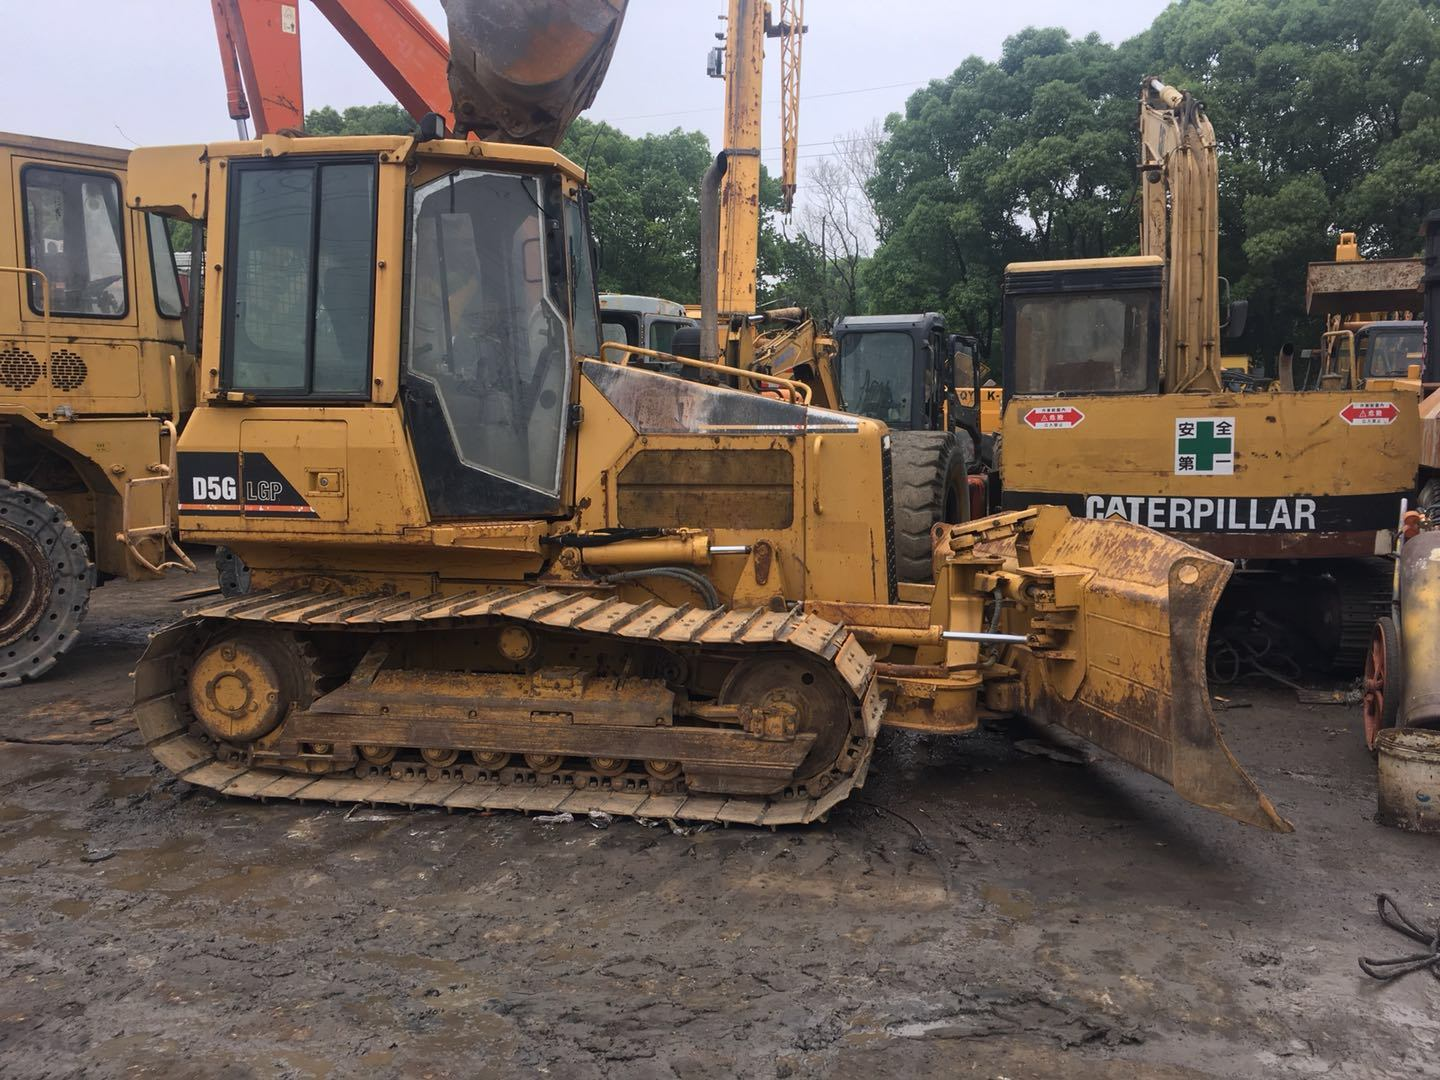 [Hot Item] New Model Used Cat Bulldozer D5g LGP 85% Undercarriage A/C  Working Old Paint